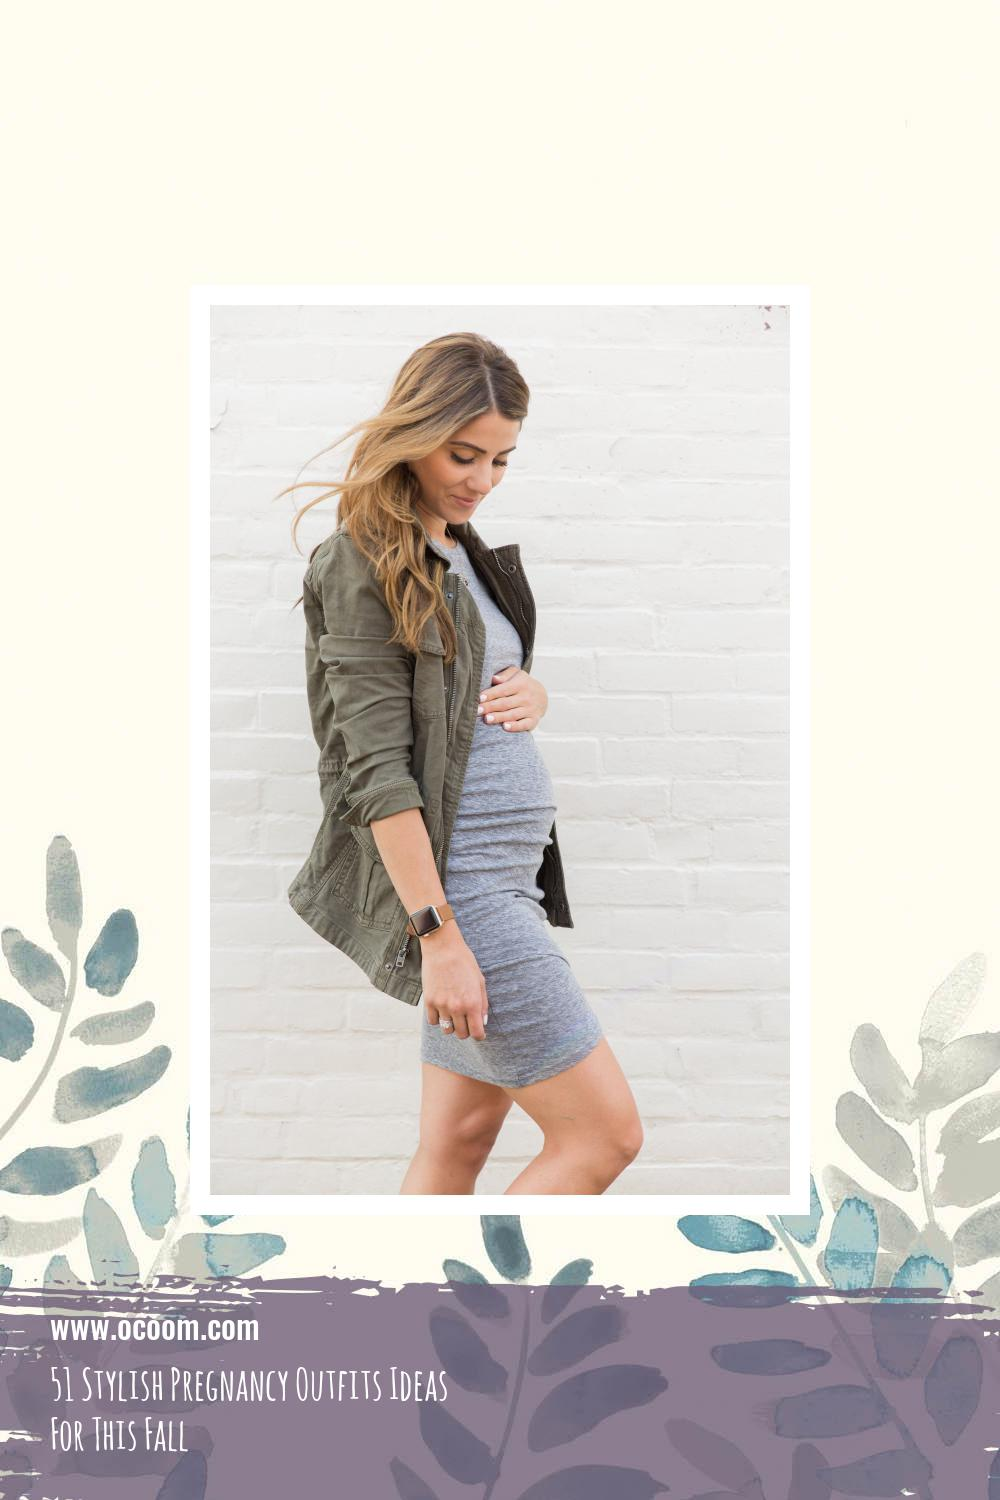 51 Stylish Pregnancy Outfits Ideas For This Fall 50